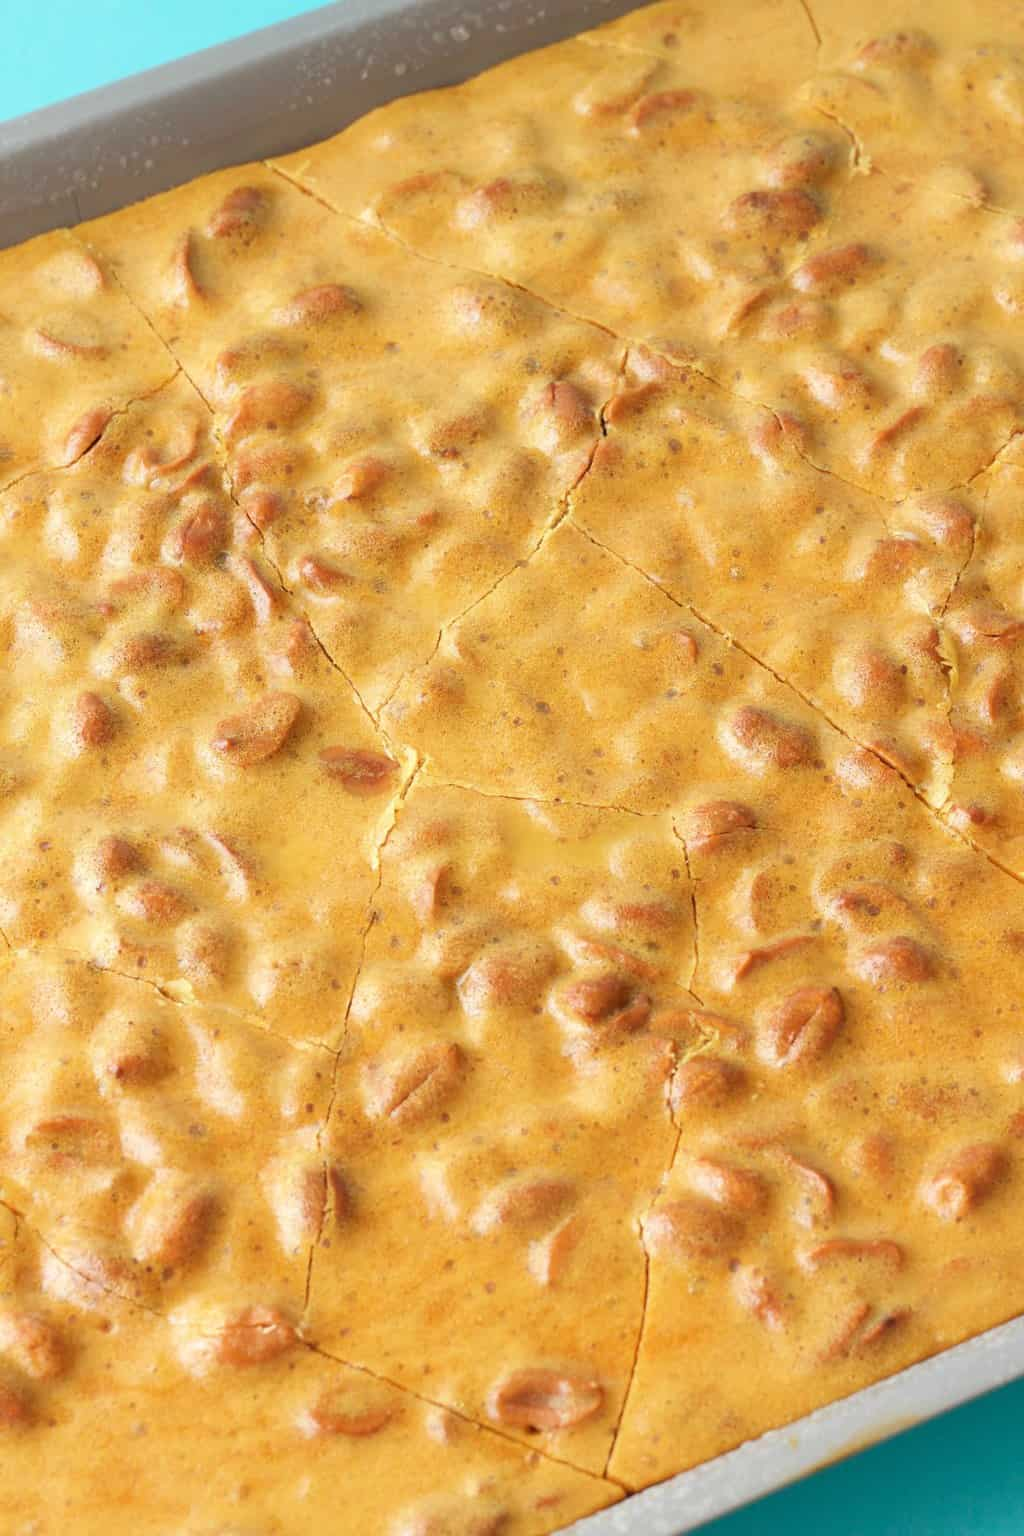 Vegan Peanut Brittle. Deliciously sweet and crunchy. Wonderful as a dessert or snack. #vegan #lovingitvegan #glutenfree #dairyfree #dessert #peanutbrittle